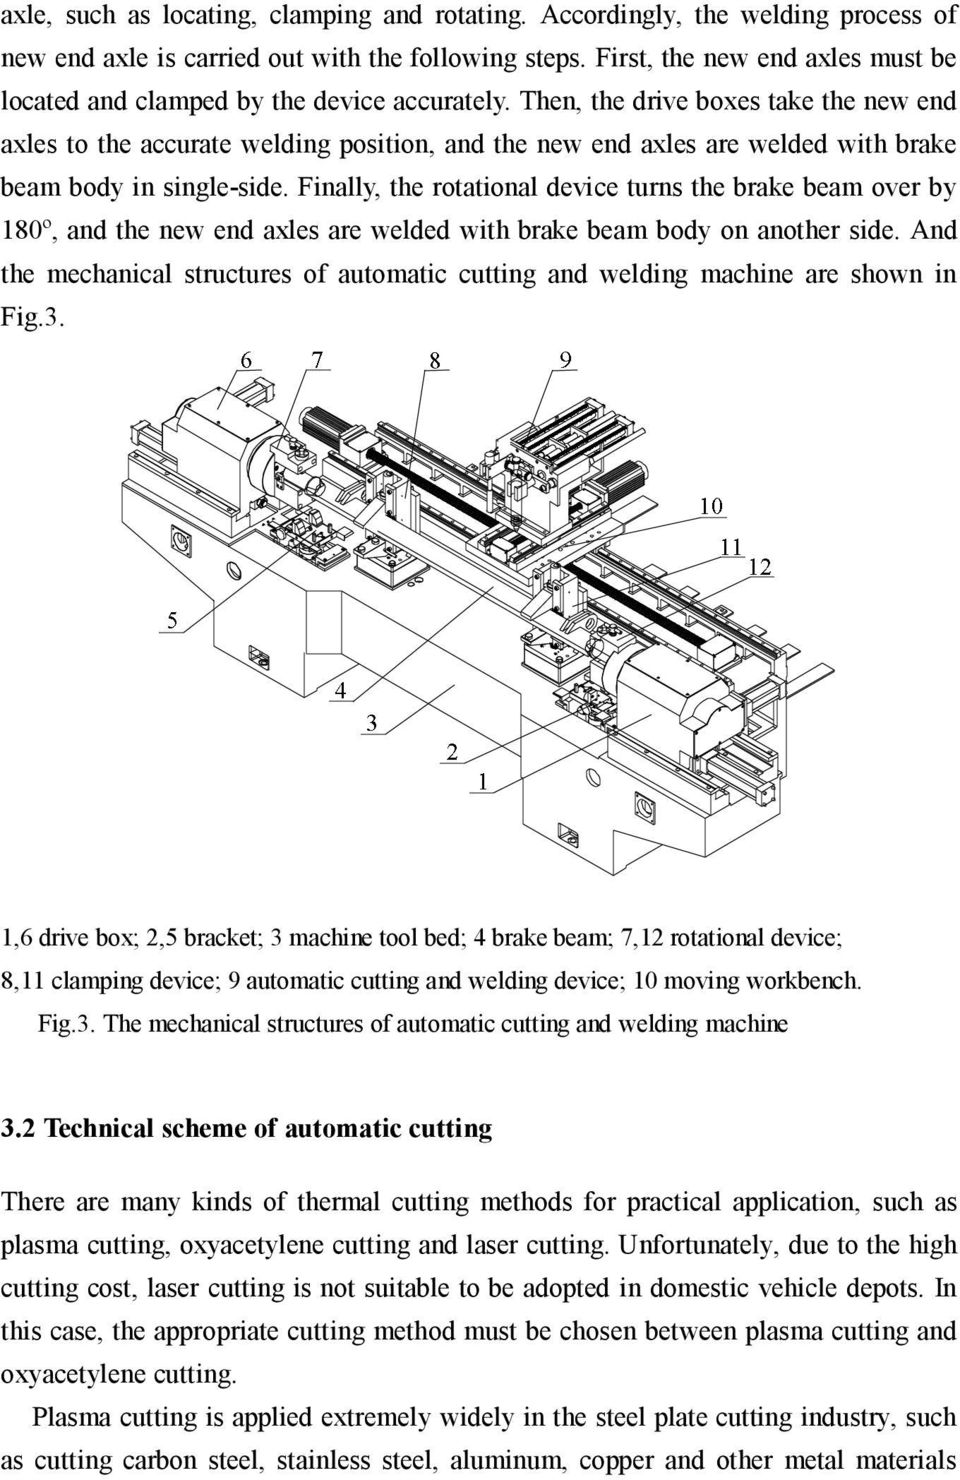 medium resolution of then the drive boxes take the new end axles to the accurate welding position